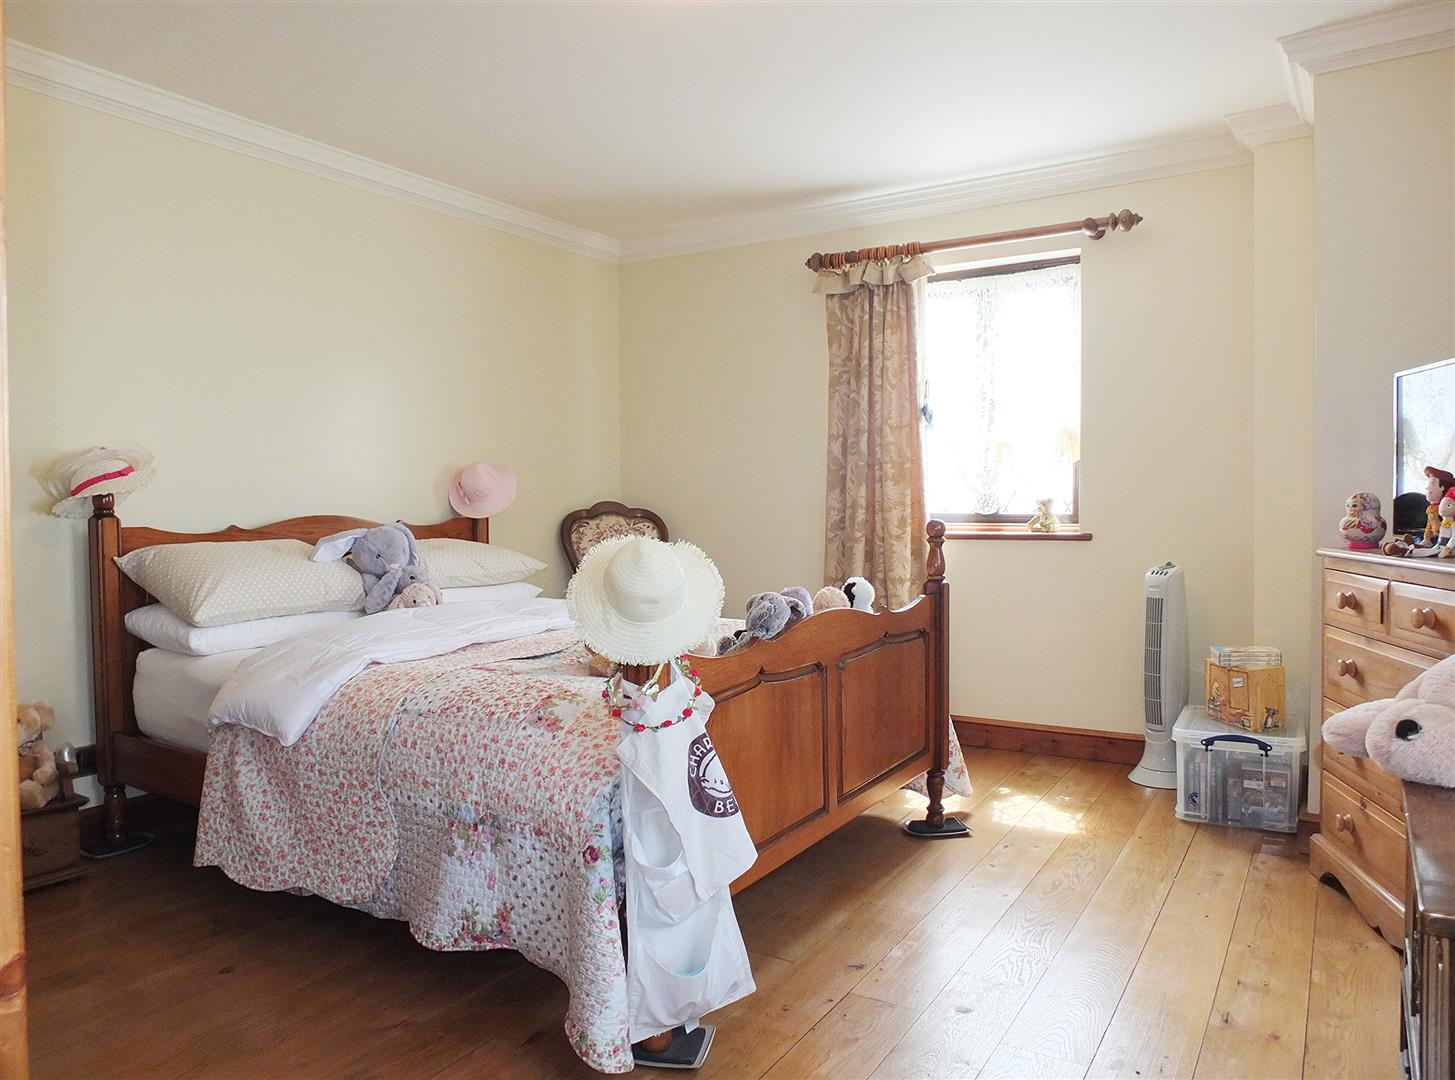 5 bed detached house for sale in Boston, PE20 2DB  - Property Image 22